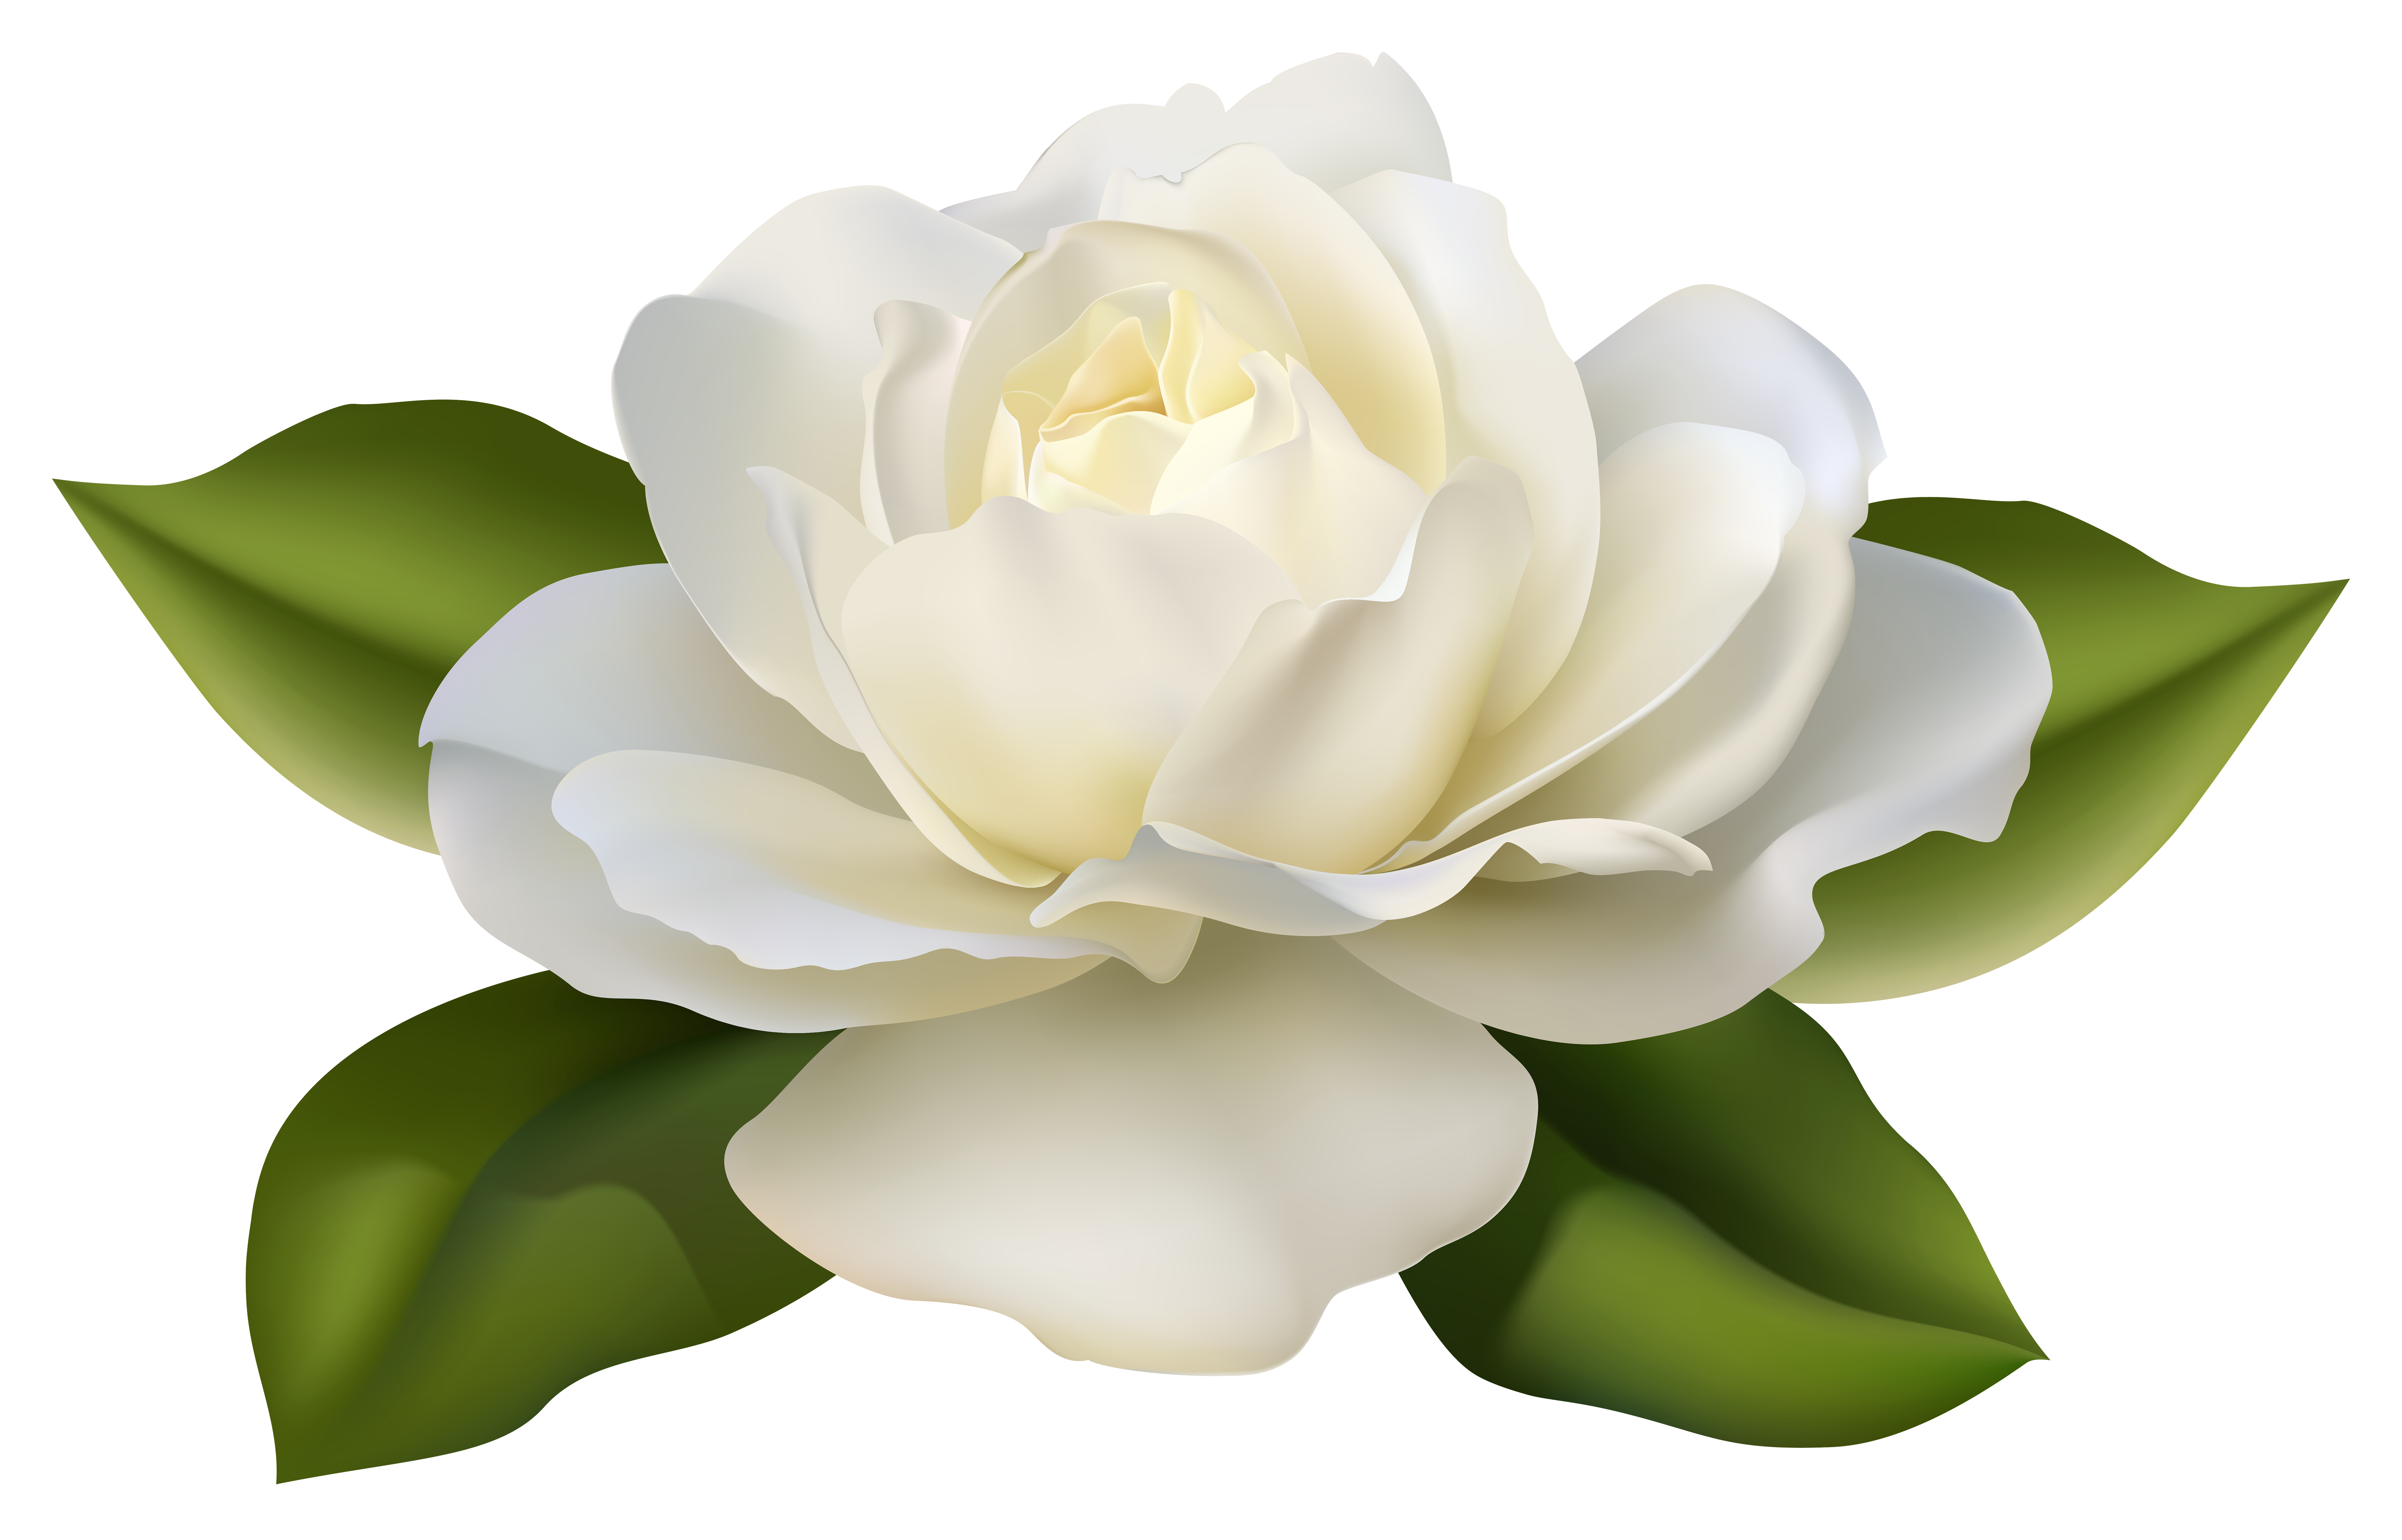 white rose, white roses pictures gallery impremedia #19057